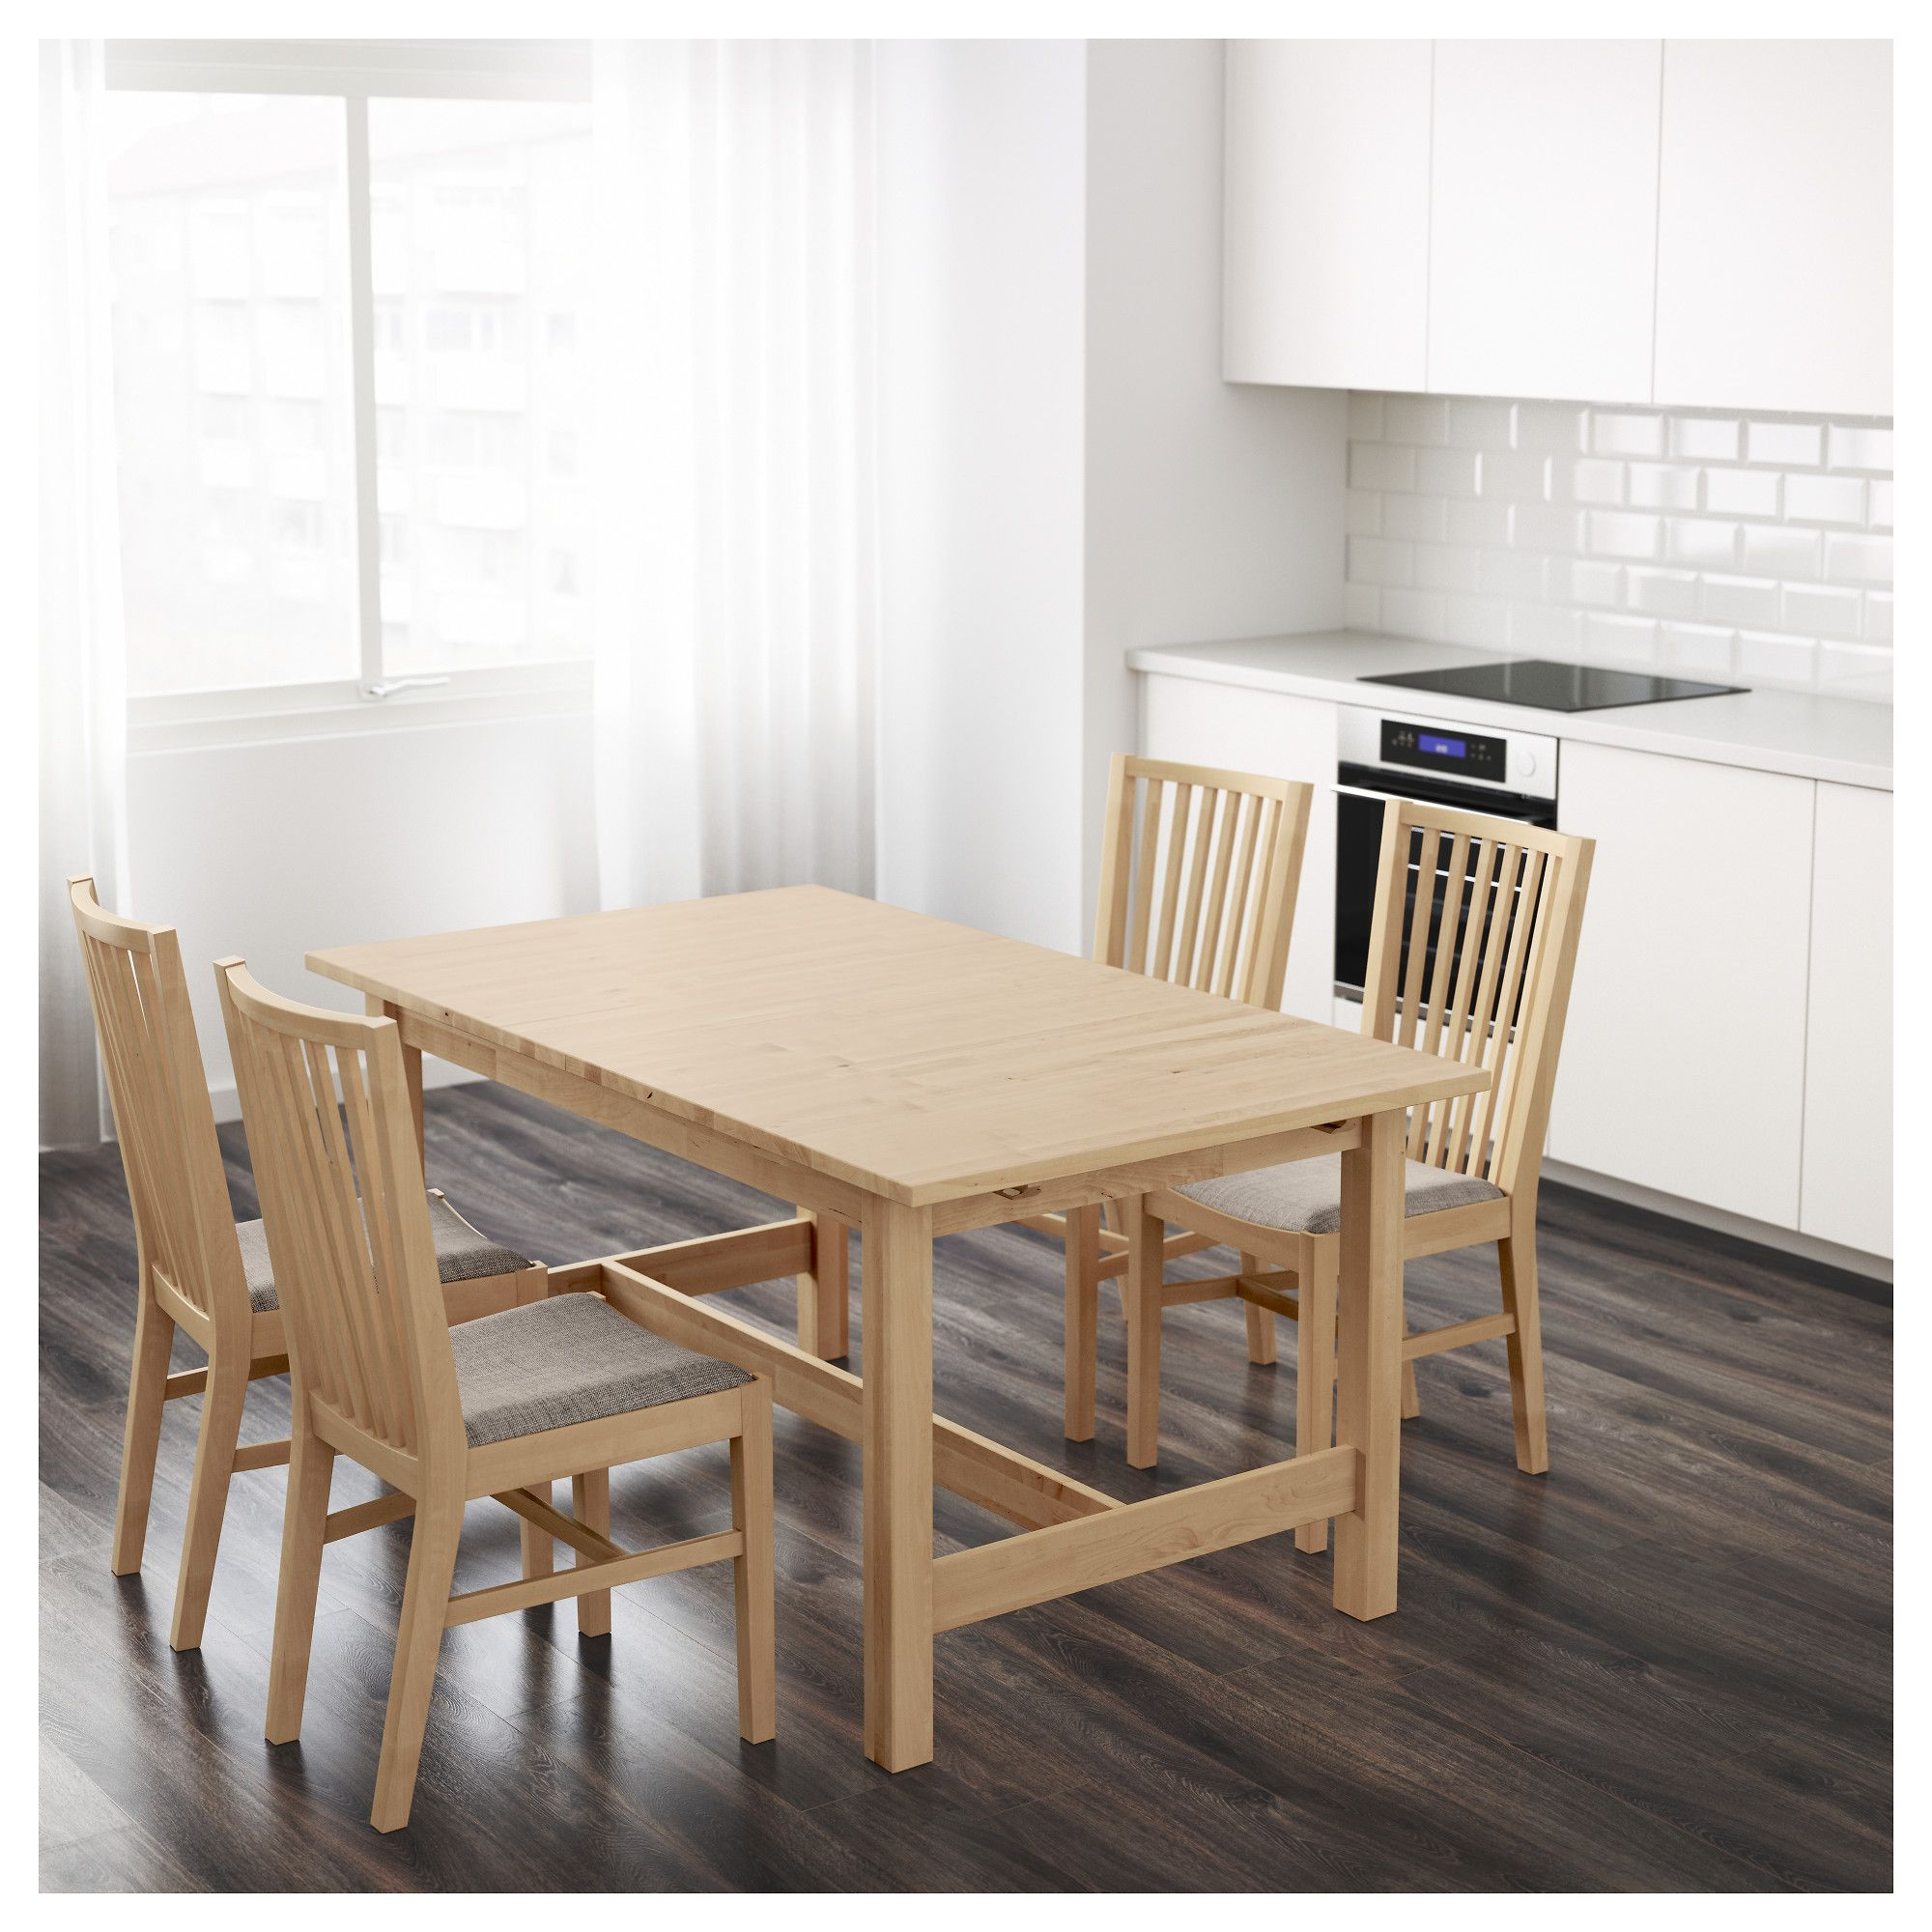 Table A Roulettes Ikea Gallery Of Ikea Norden Extendable Table Extension Leaf